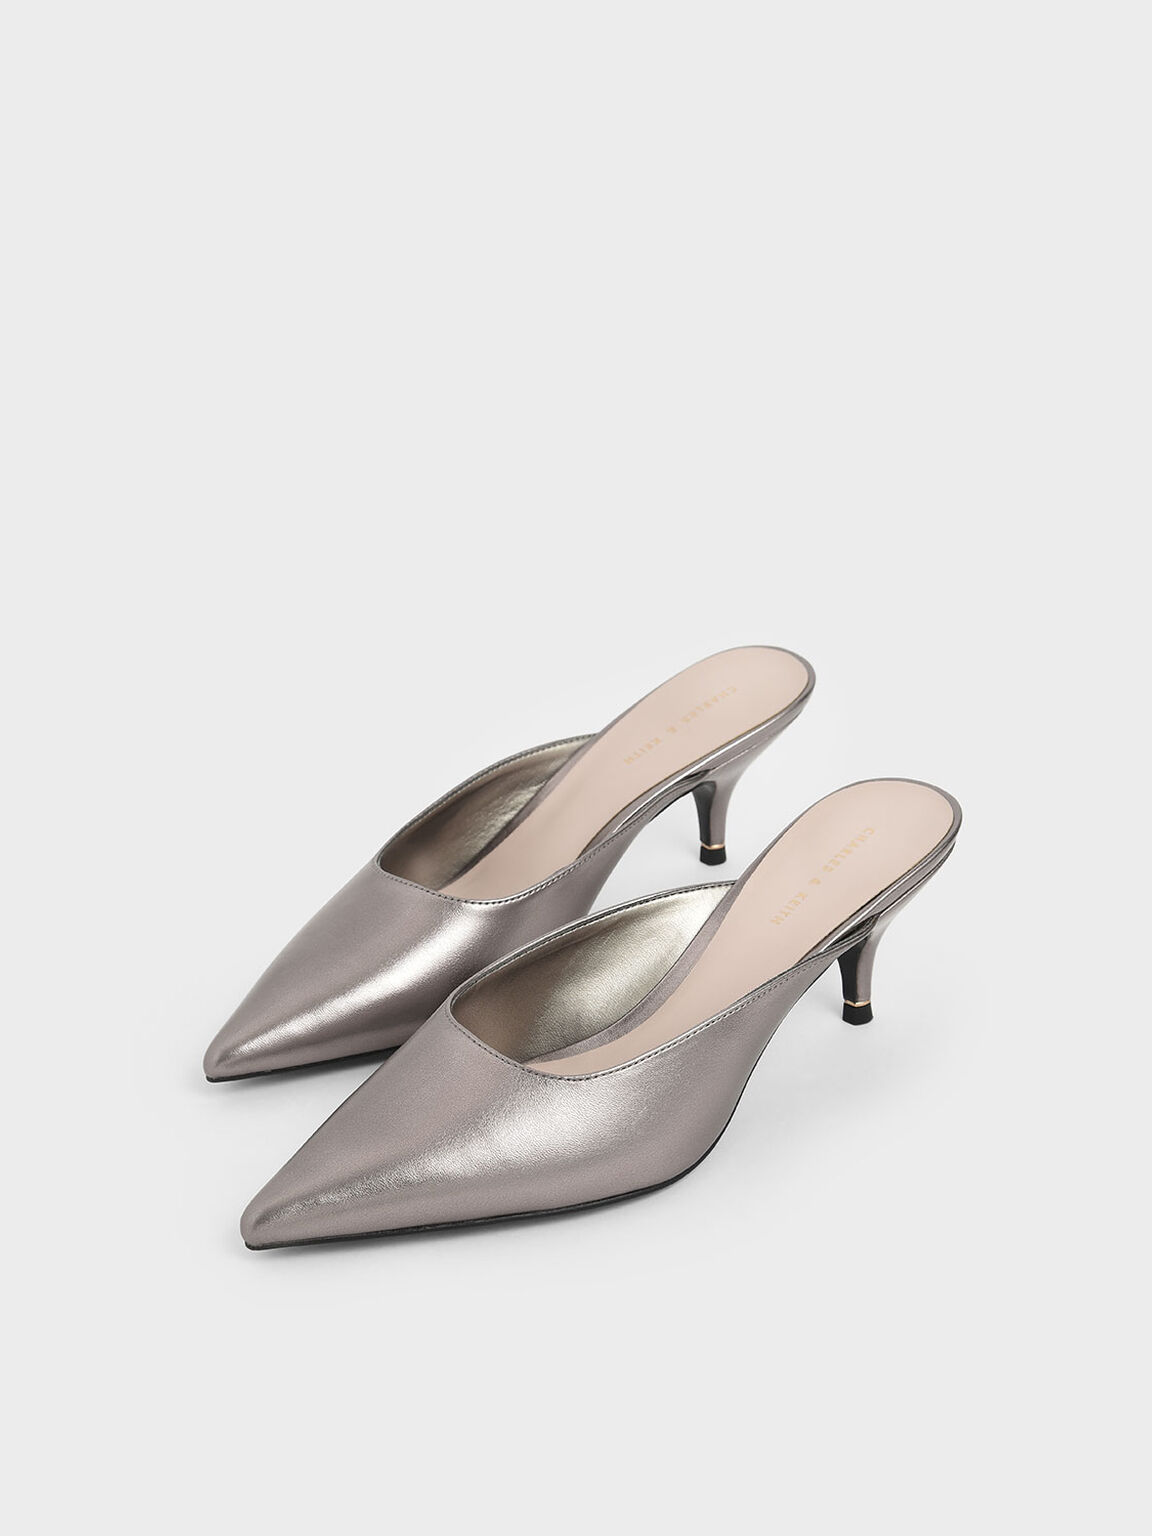 Metallic Pointed Toe Kitten Heel Mules, Pewter, hi-res